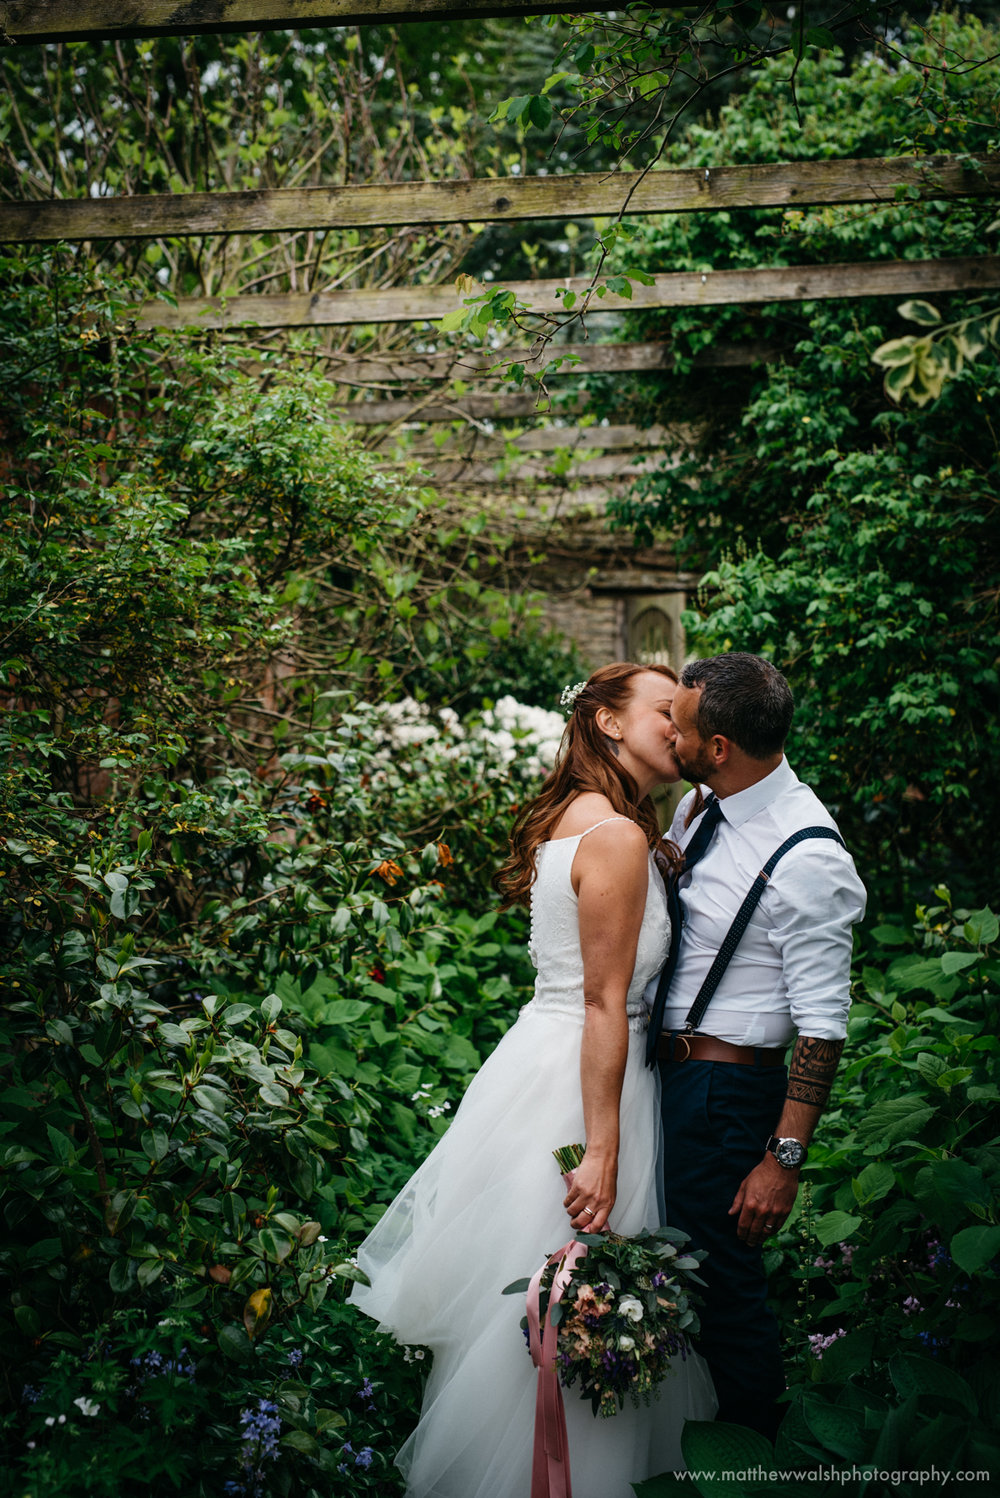 A very intimate moment for the bride and groom as they kiss in the gardens